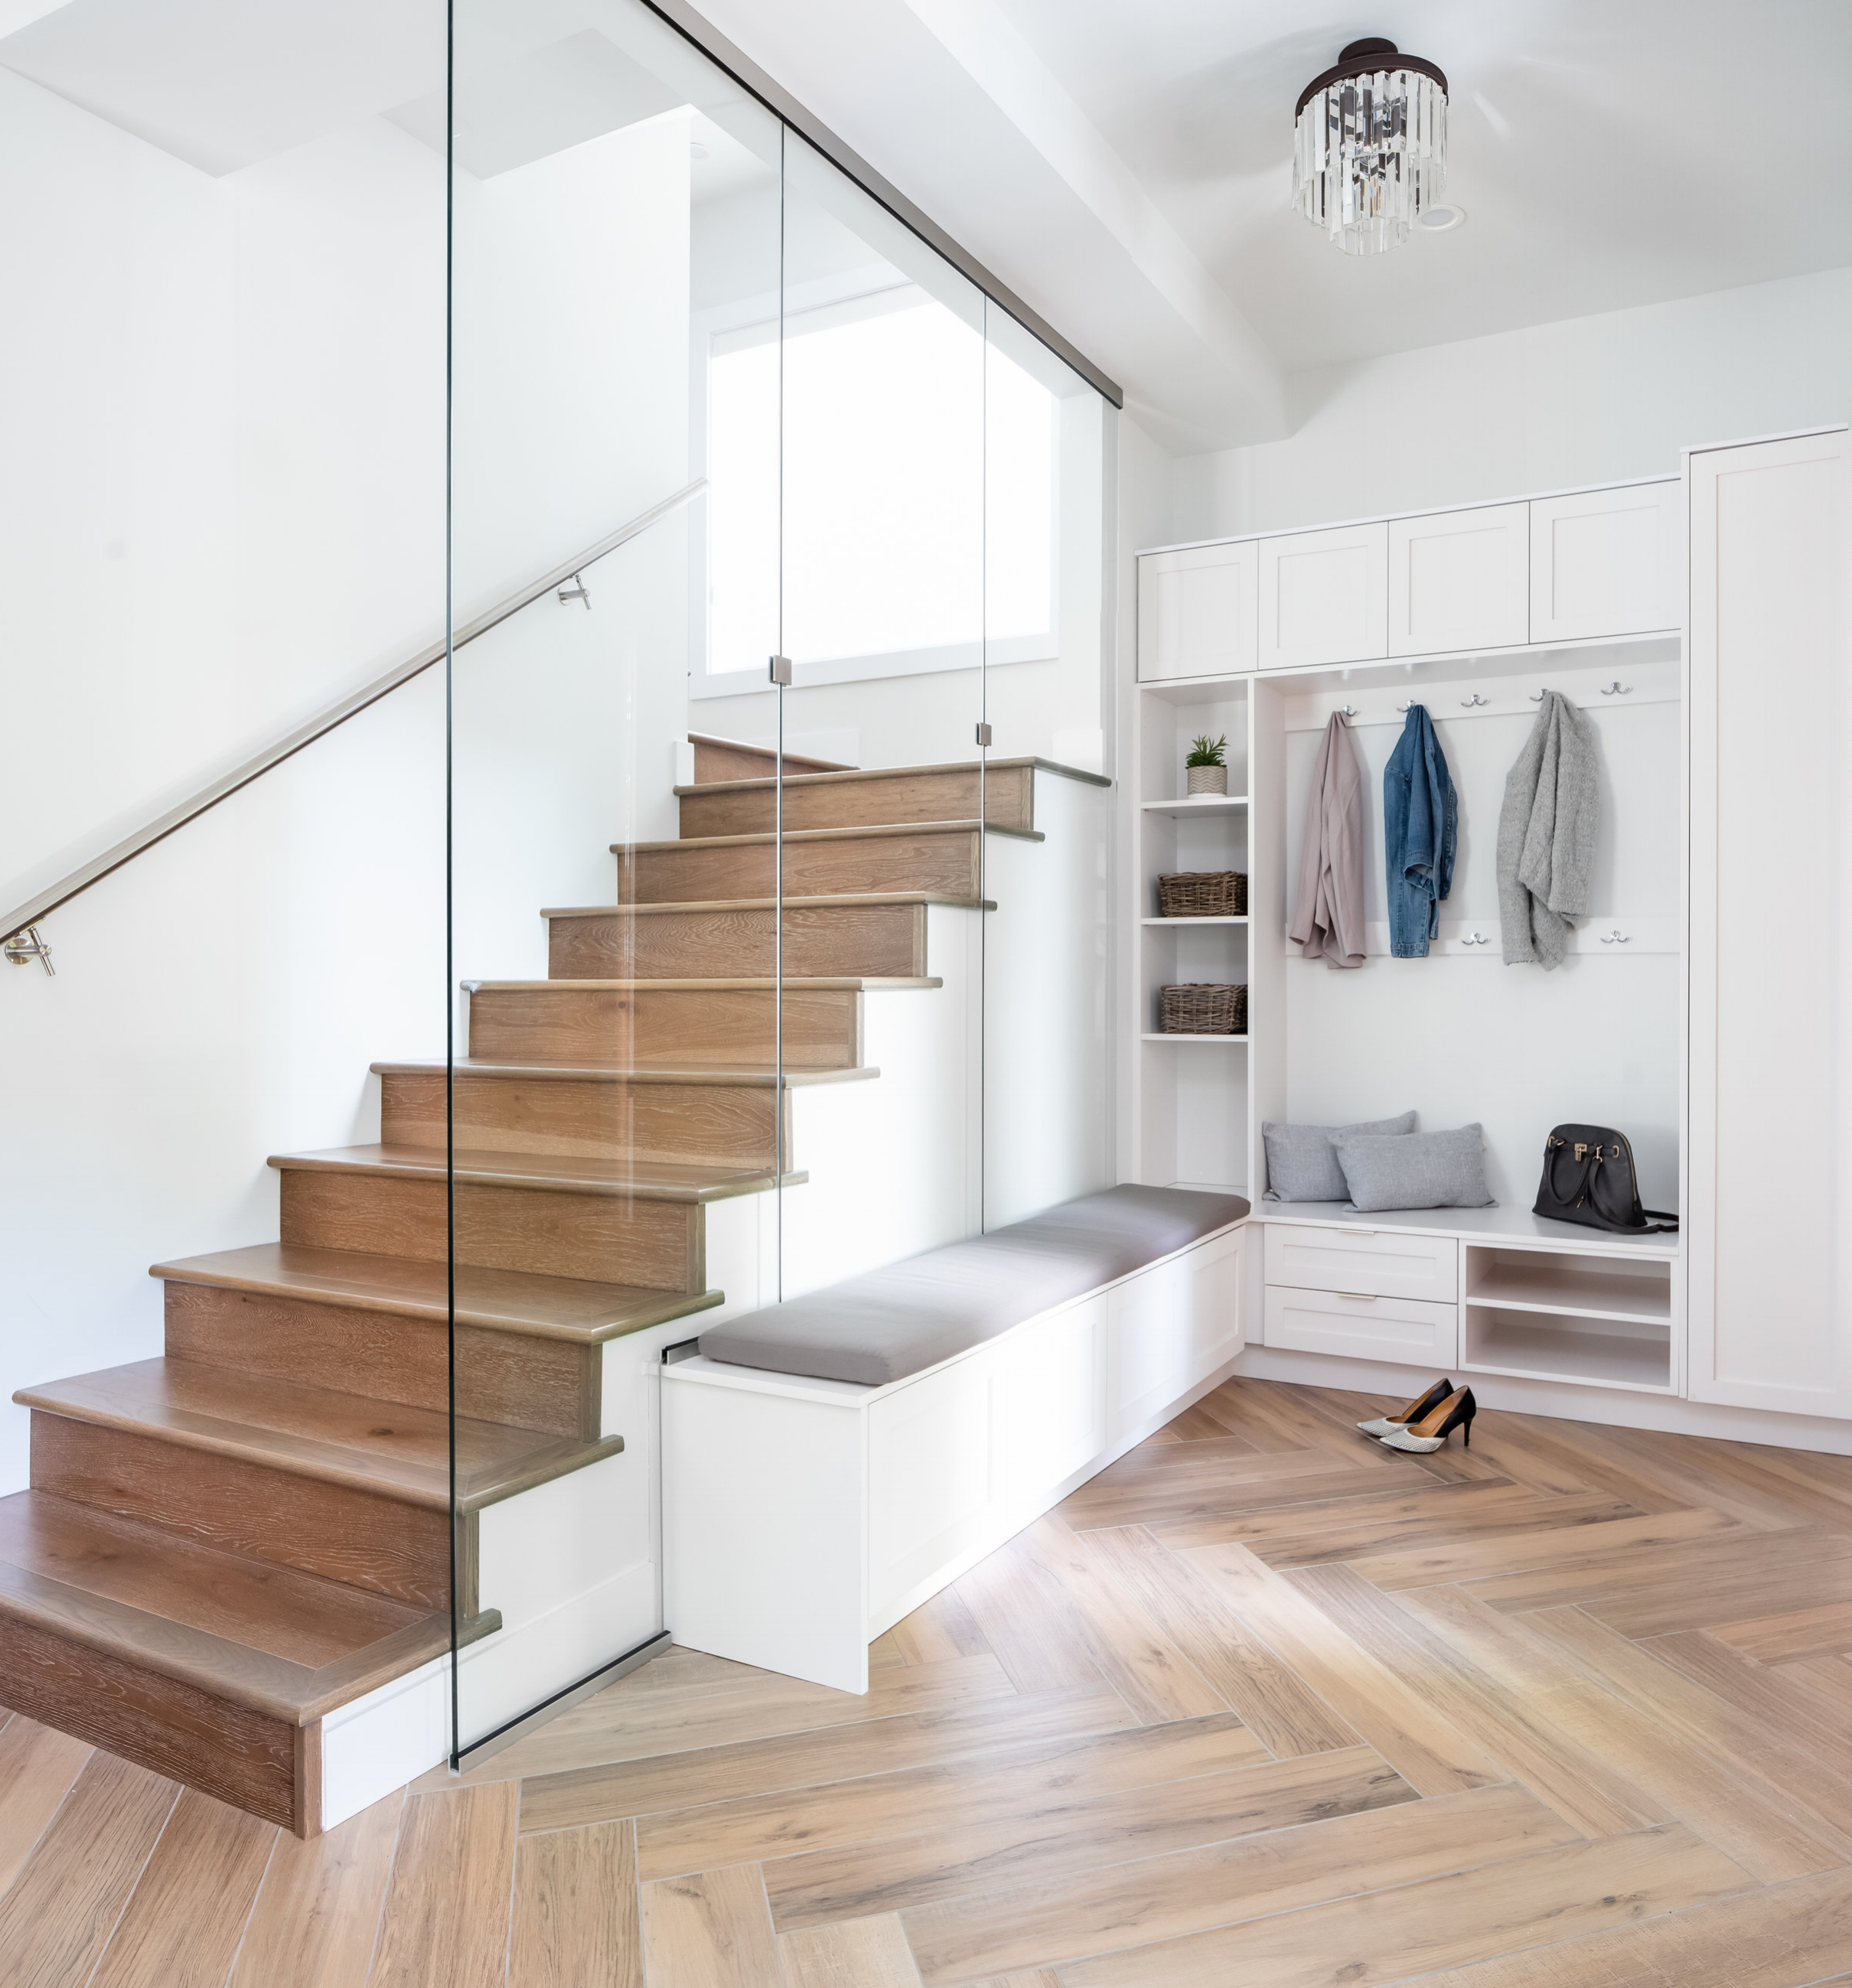 What We Do Best - | Listen attentively to determine your individual needs, lifestyle & taste.| Stay well versed in market trends and technological advances so we can help you make informed choices concerning the design, construction and costing for your home.| We build your home as if it was to be our own.